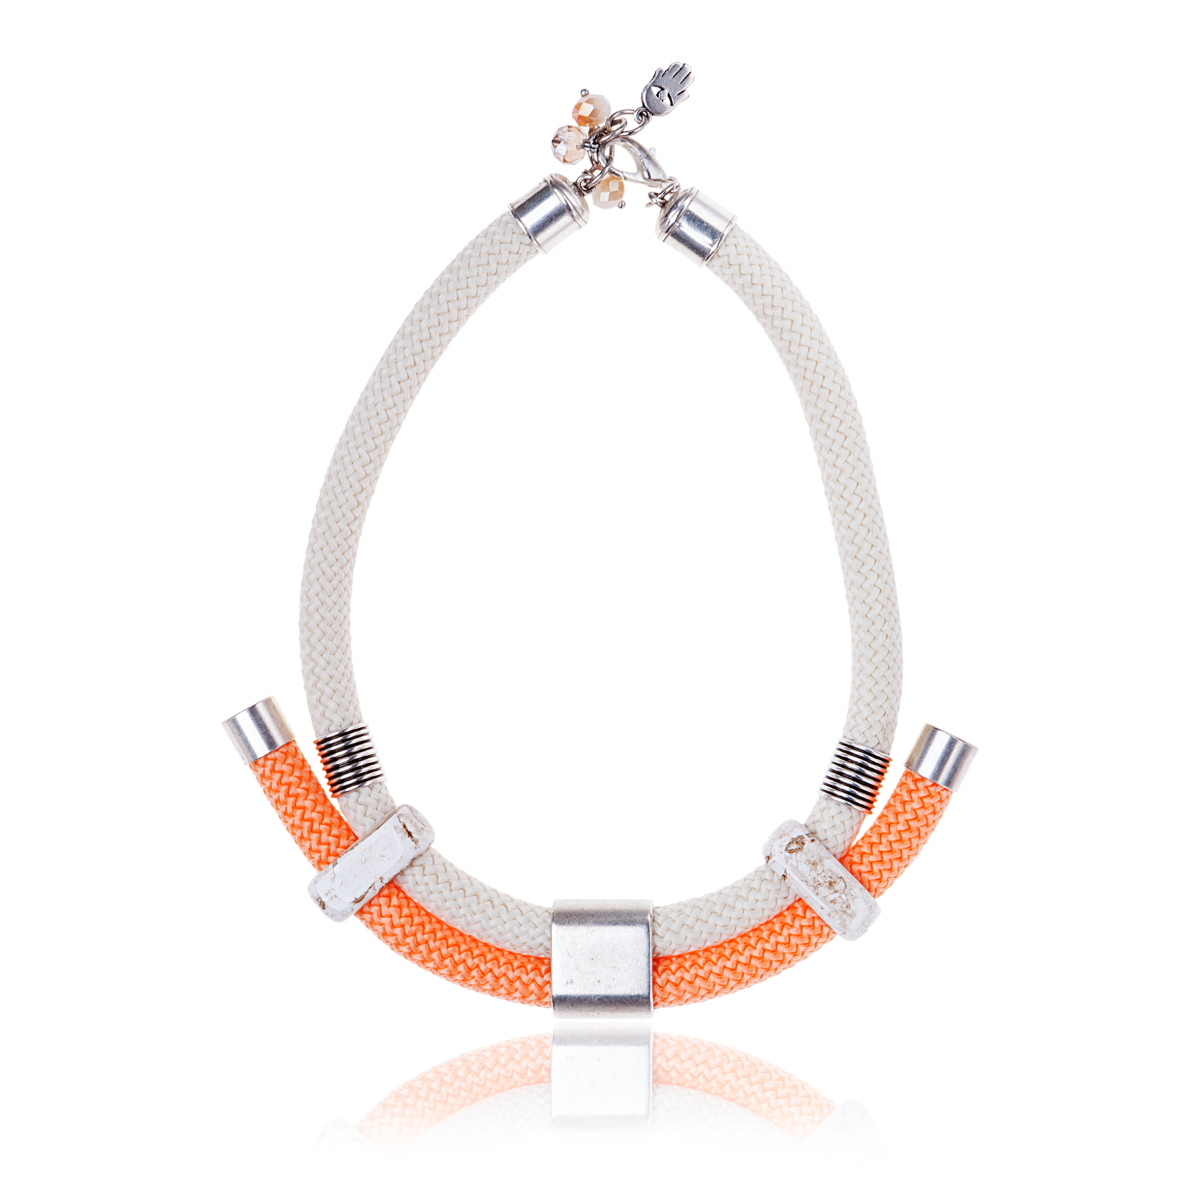 IRIS: Make a statement necklace / White, Orange & Silver | Accessories,Jewelry > Necklaces,Jewelry -  Hiphunters Shop